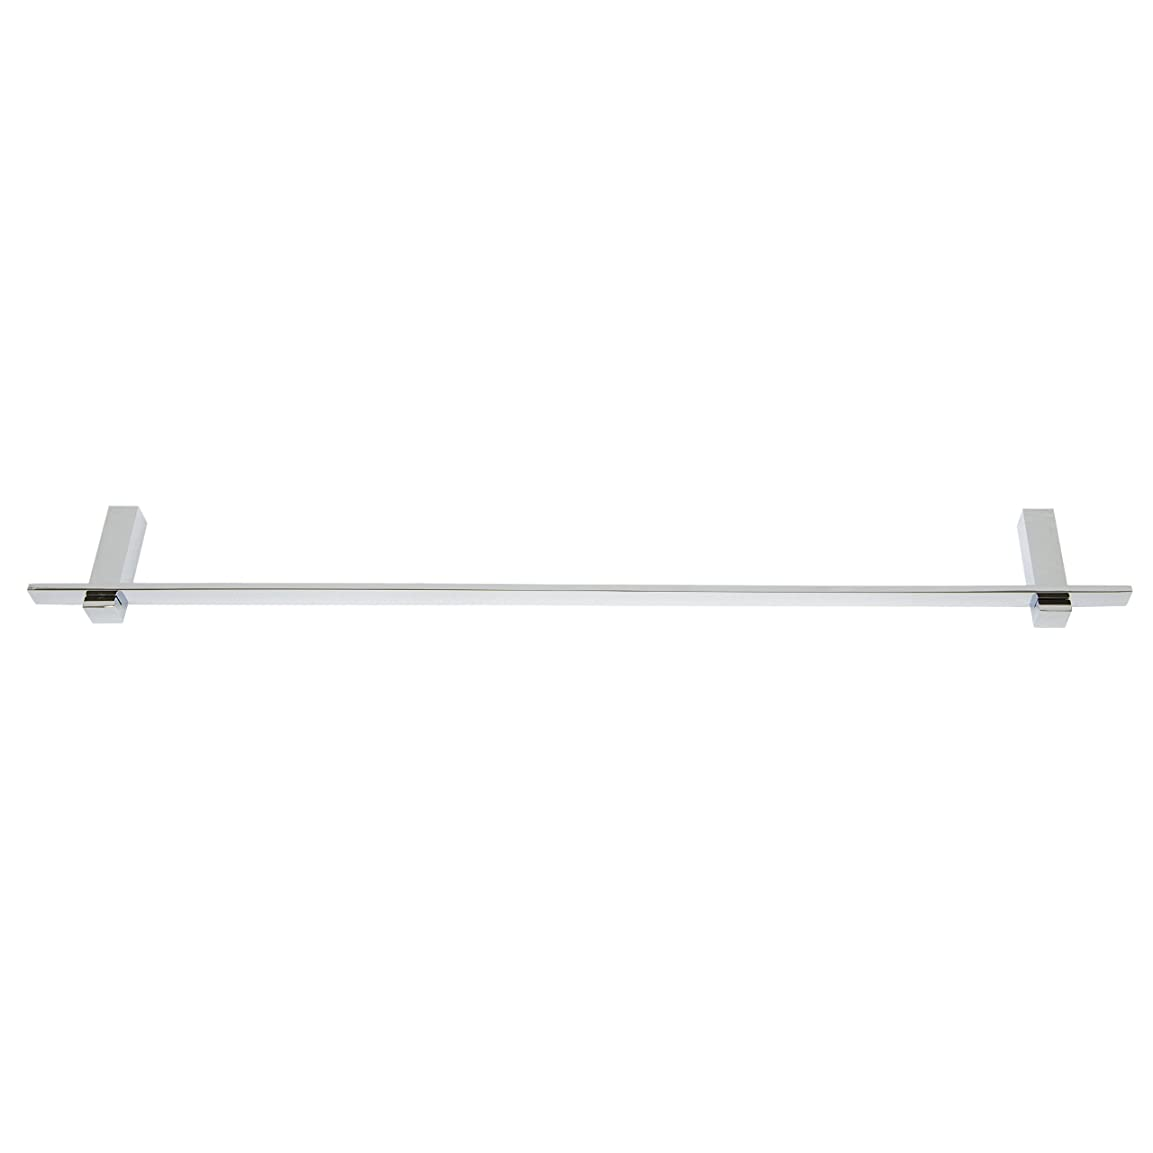 うがい見通しクライマックスItalia Sorrento 60cm Wall Mounted Towel Bar